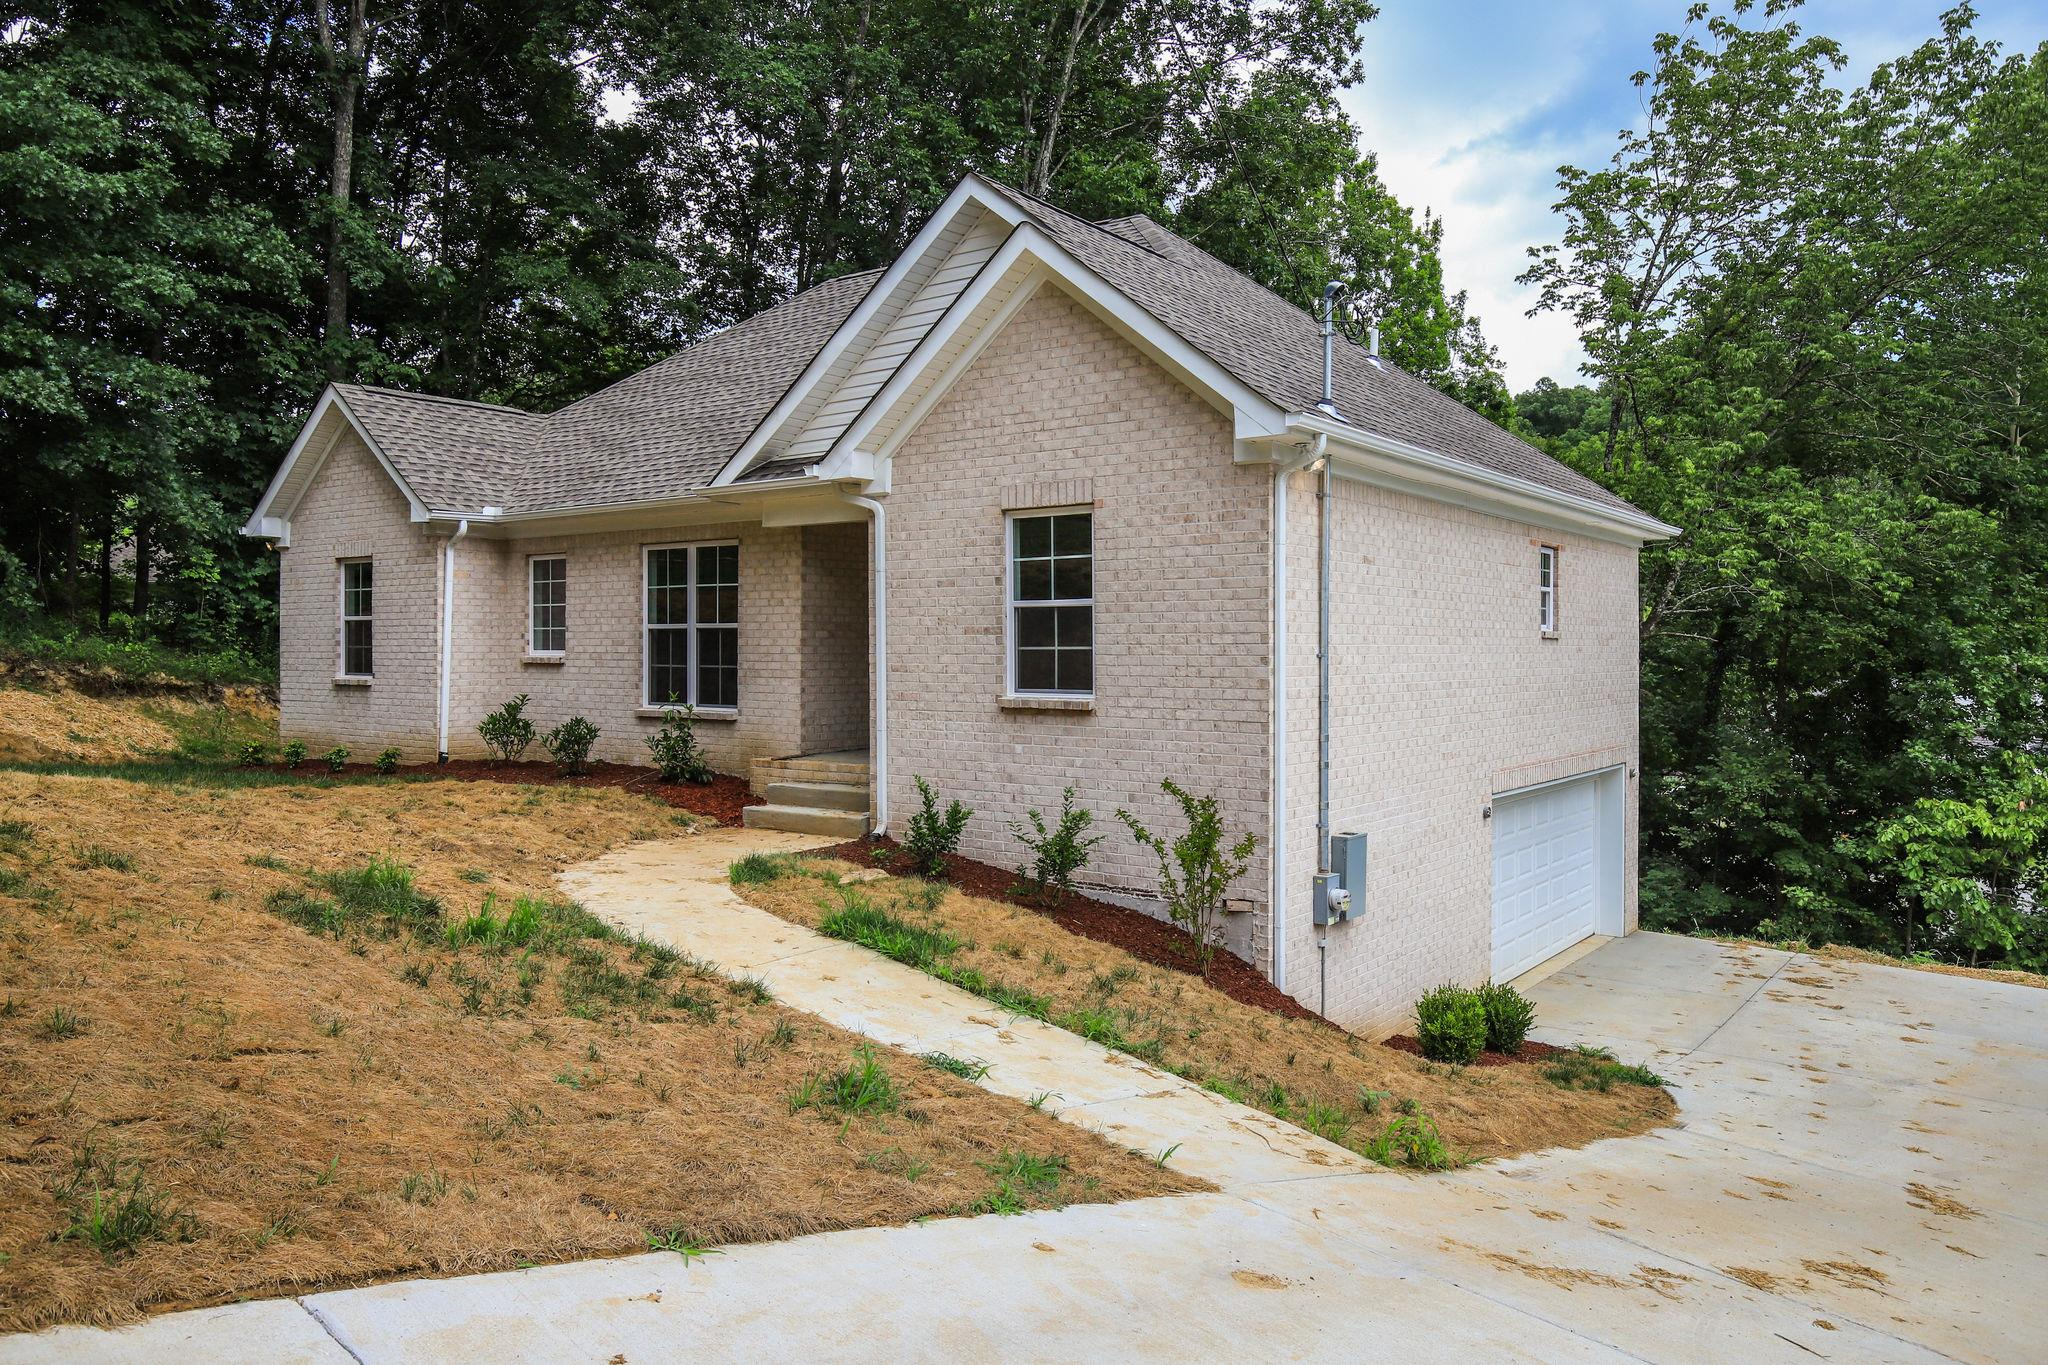 1022 Brookview Ct, Goodlettsville, TN 37072 - Goodlettsville, TN real estate listing